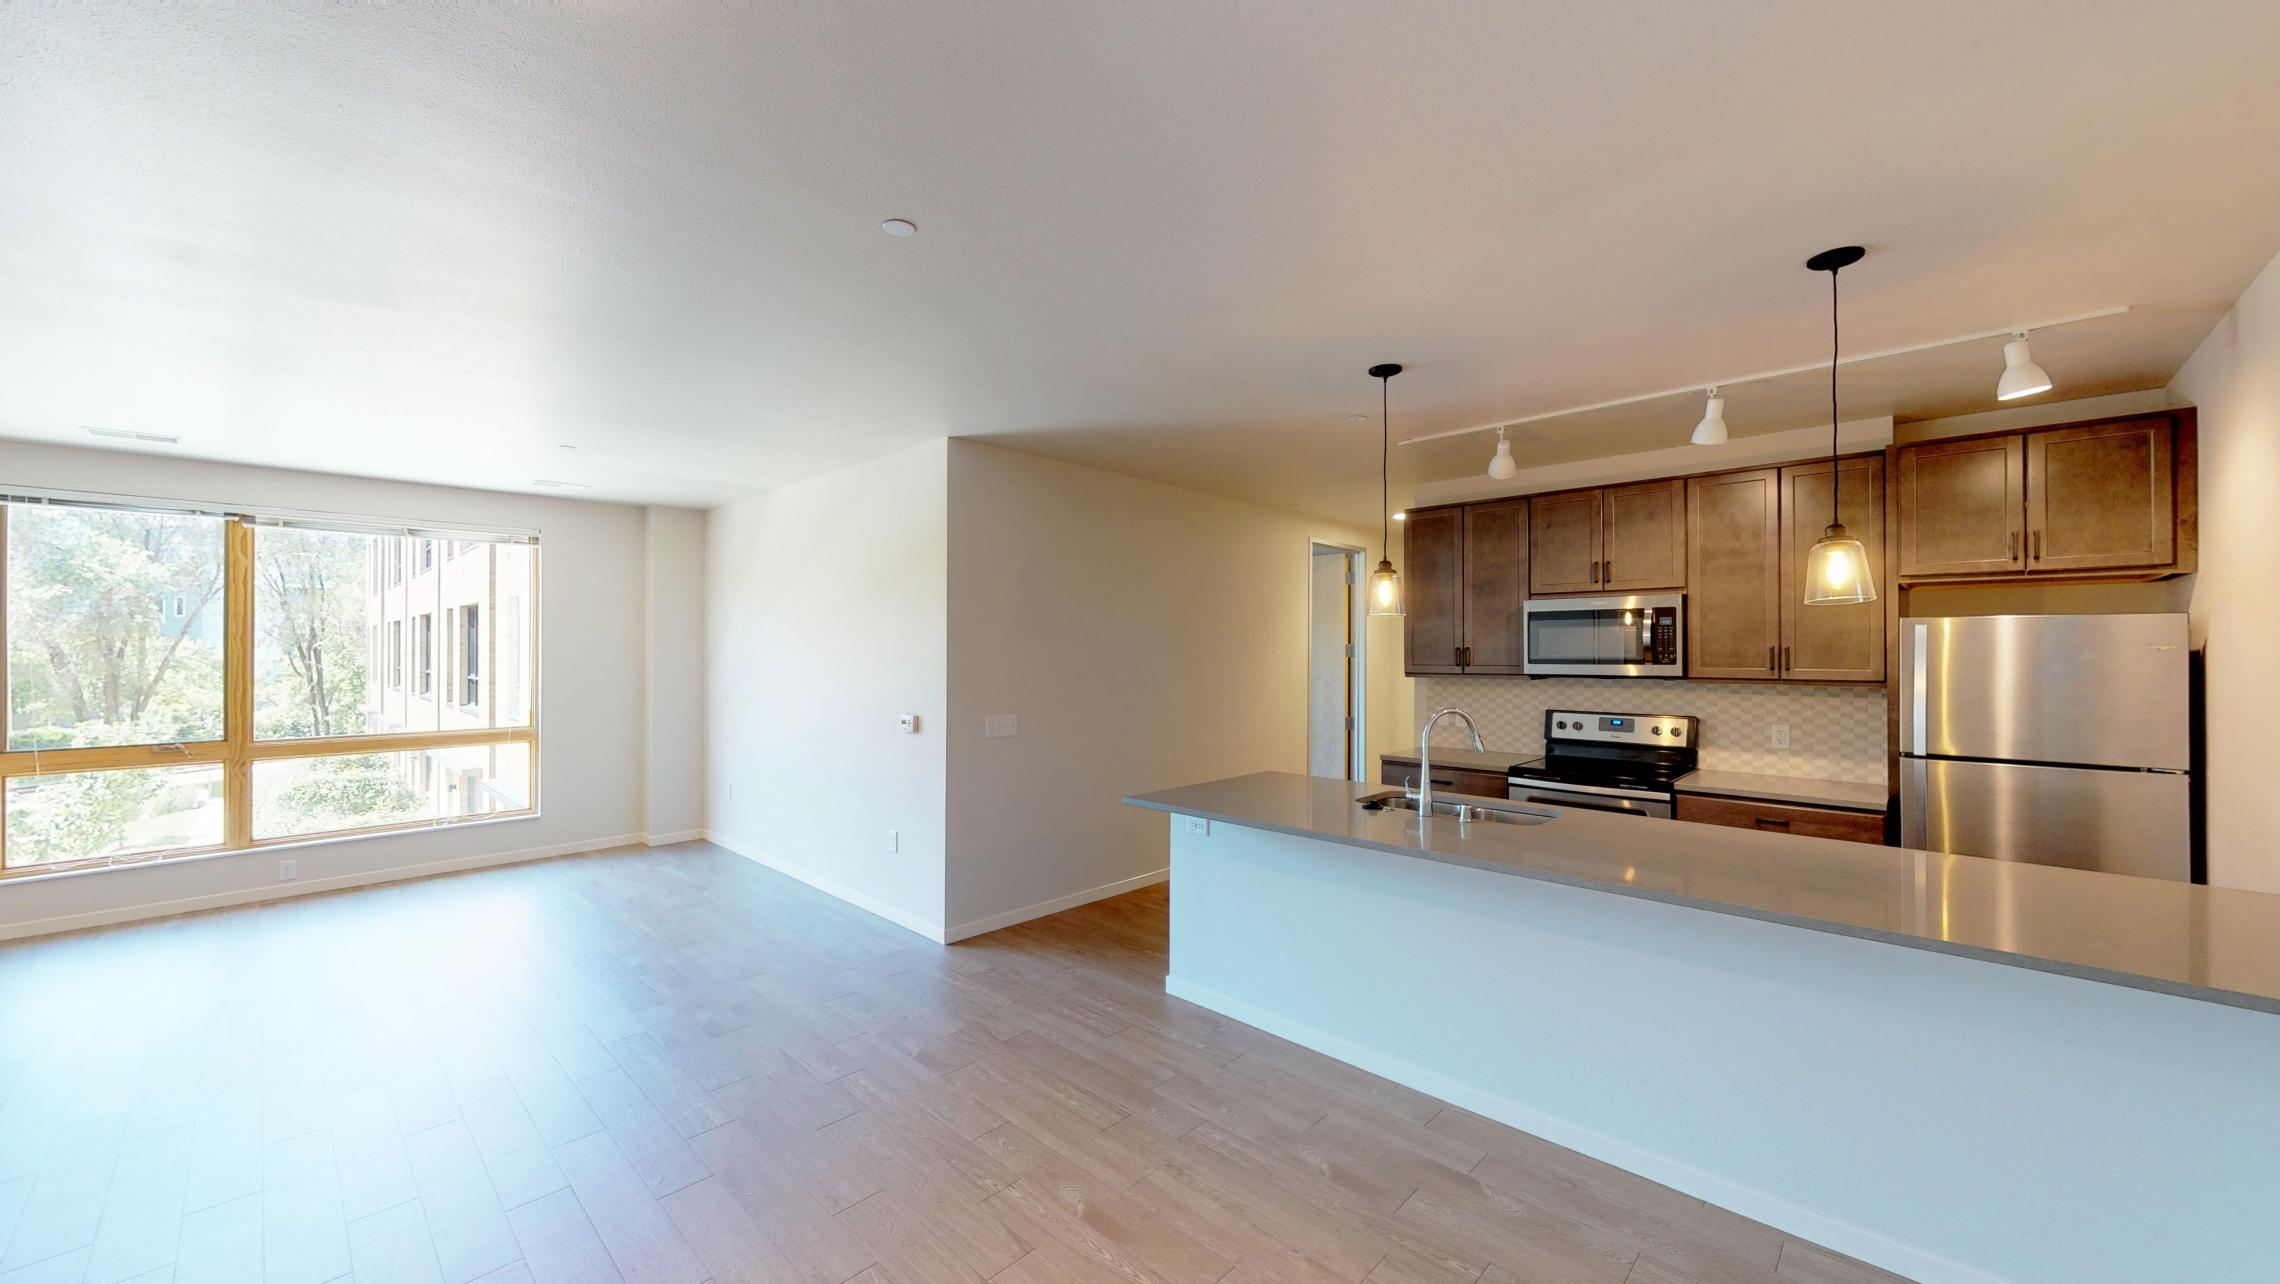 Quarter-Row-Yards-Apartment-310-Three-Bedroom-Two-Den-Modern-Upscale-Fitness-Lounge-Courtyard-Downtown-Living-Amenities-Luxury